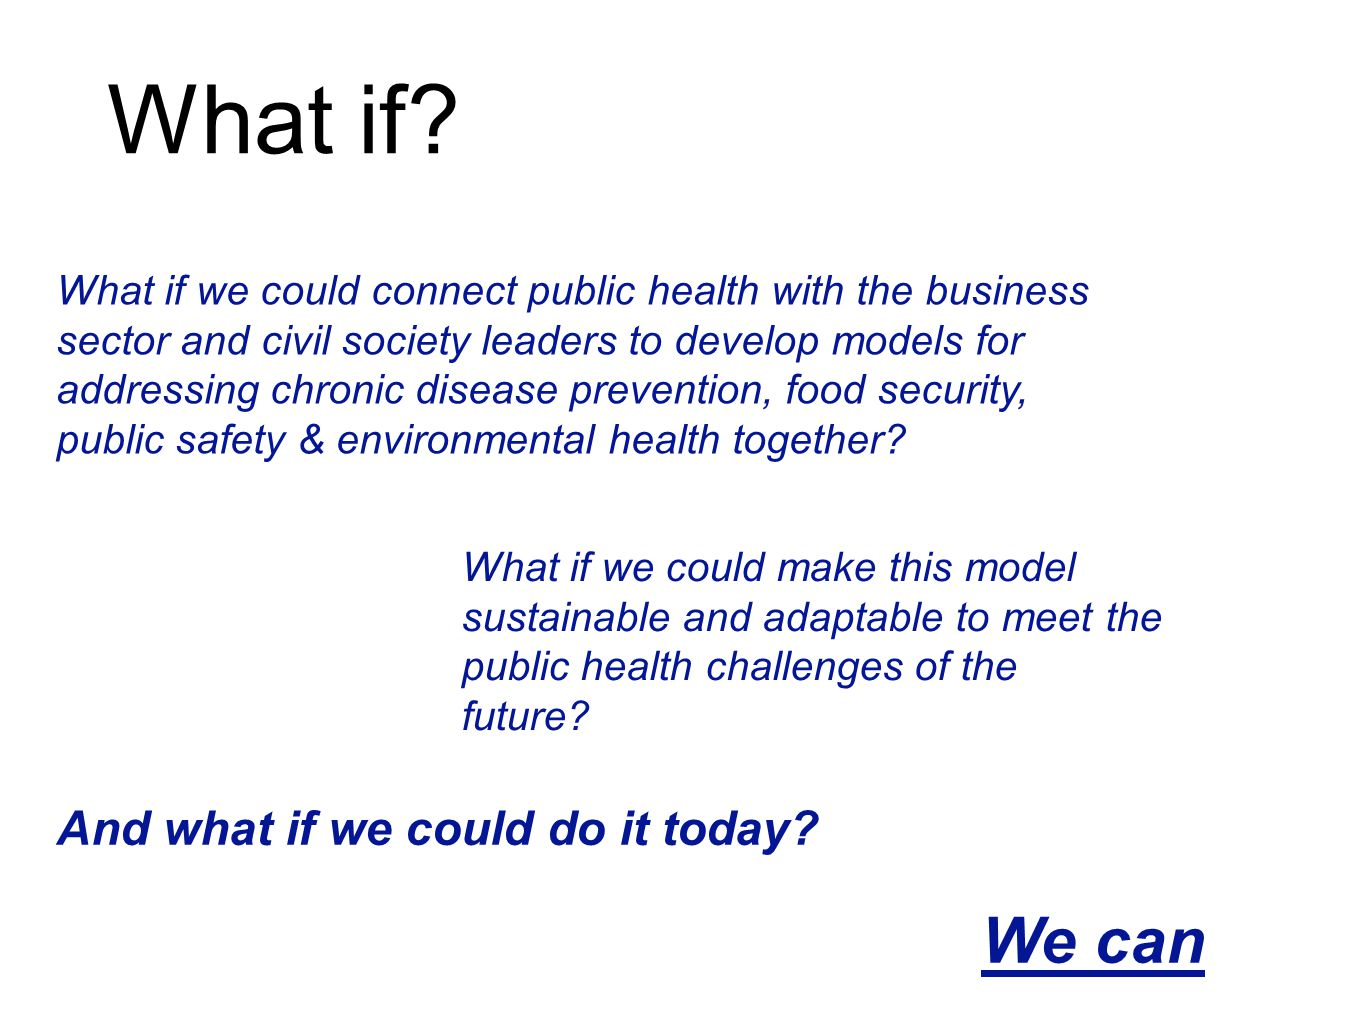 What if we could connect public health with the business sector and civil society leaders to develop models for addressing chronic disease prevention, food security, public safety & environmental health together.